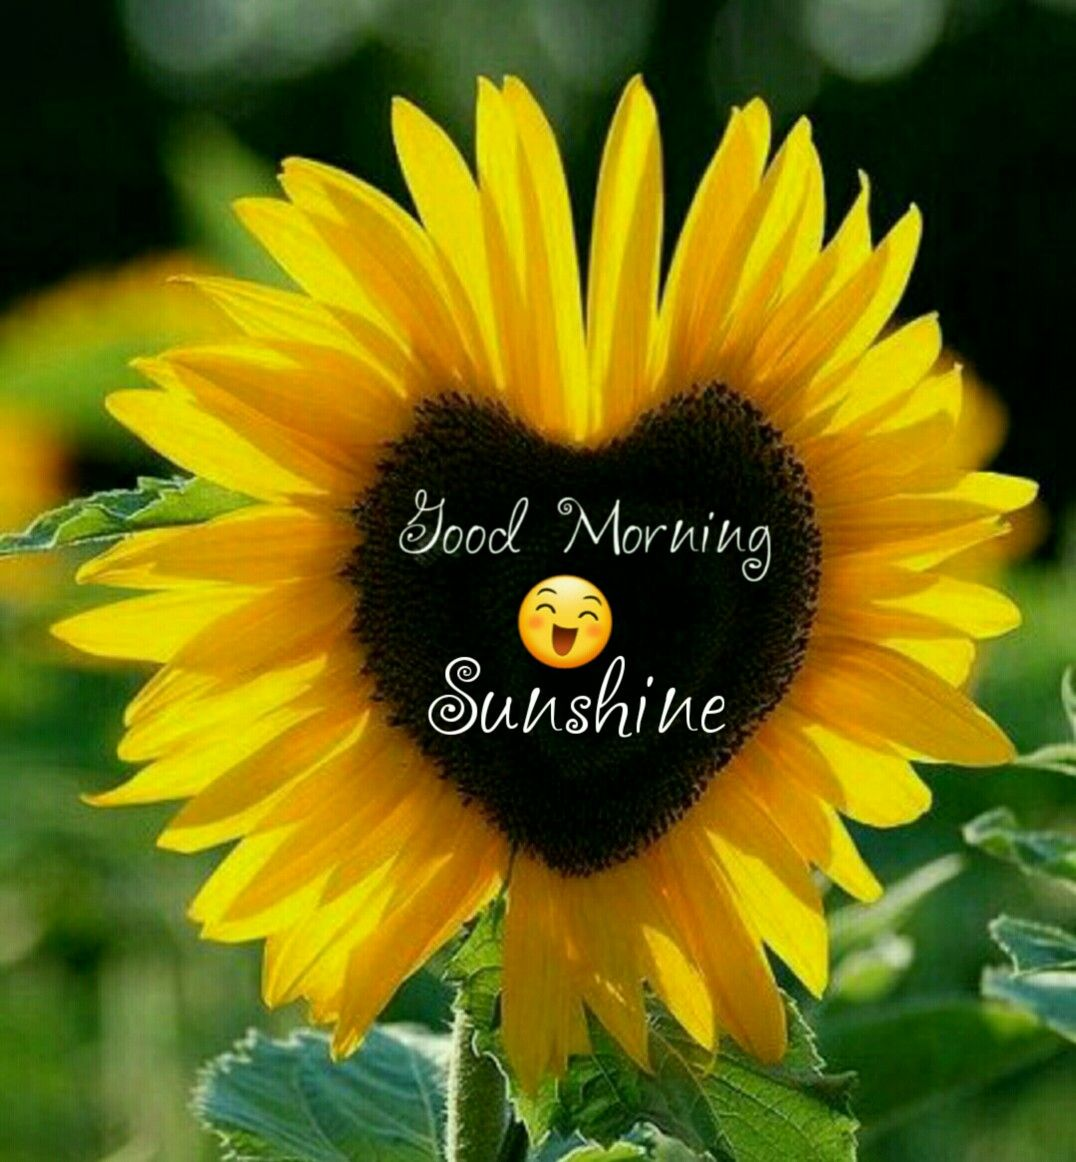 Sunshine Good Morning Beautiful Flowers Sunflower Quotes Good Morning My Friend